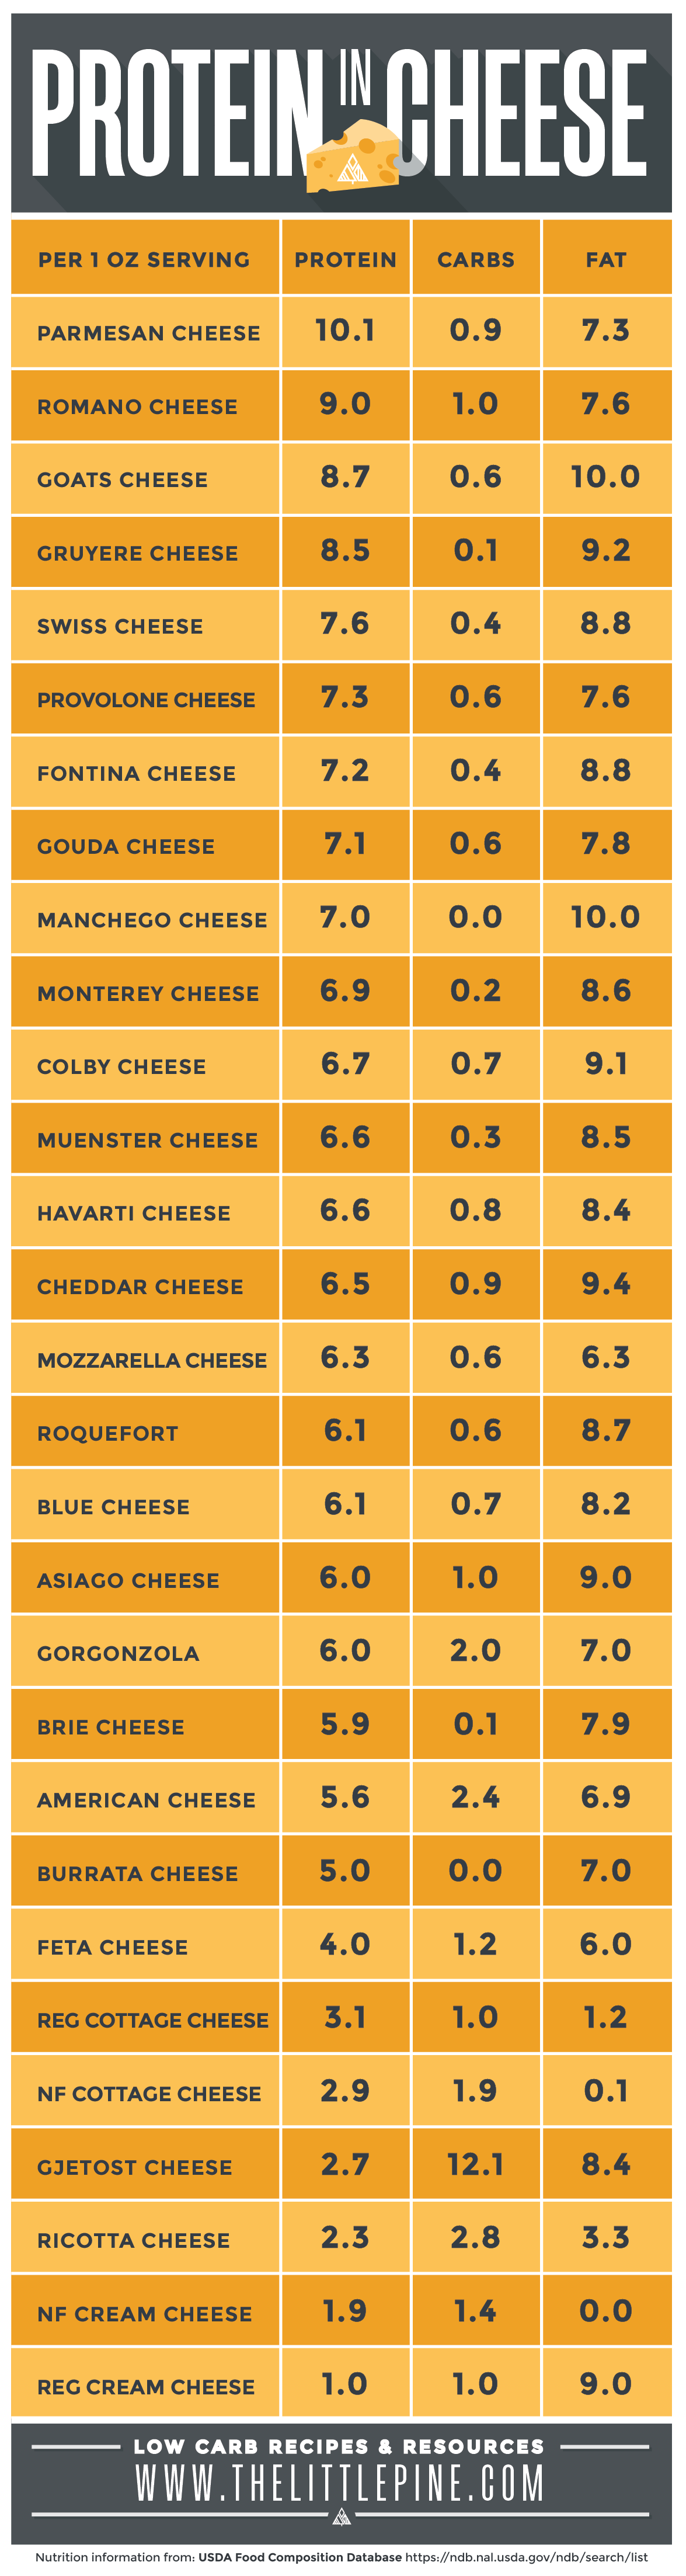 infographic of protein in cheese